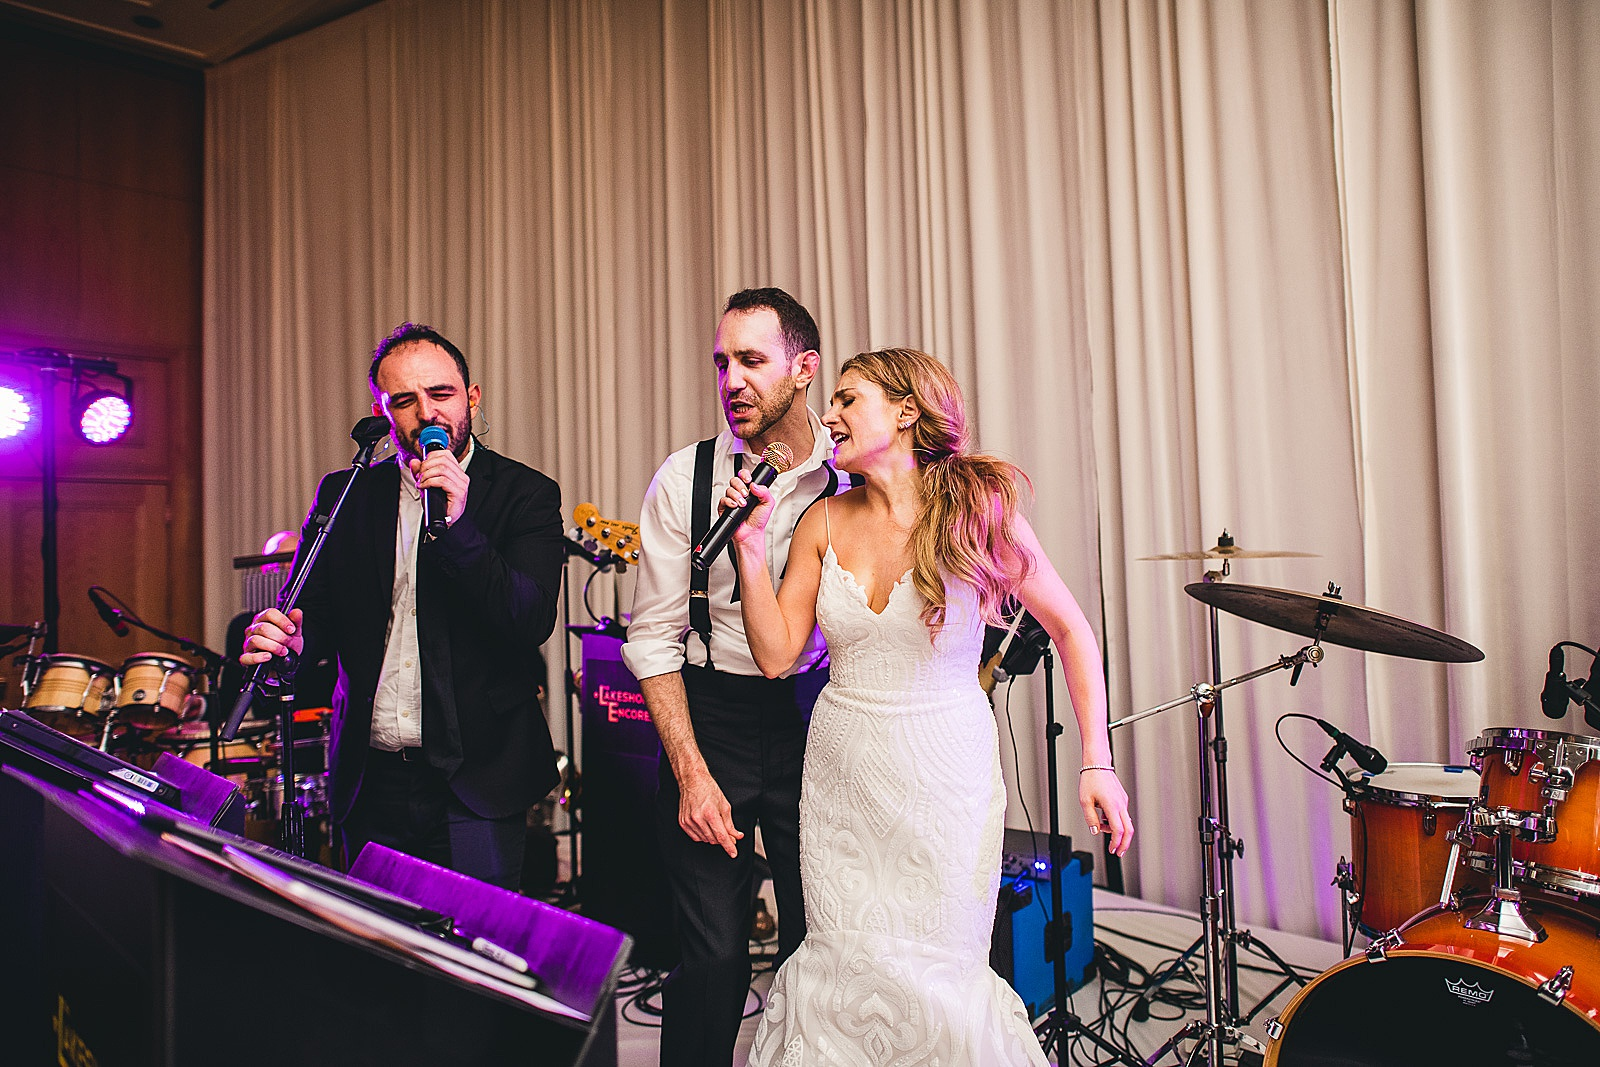 77 bride and groom singing with band - Susie + Eric's Jewish Wedding at the Peninsula Hotel in Chicago